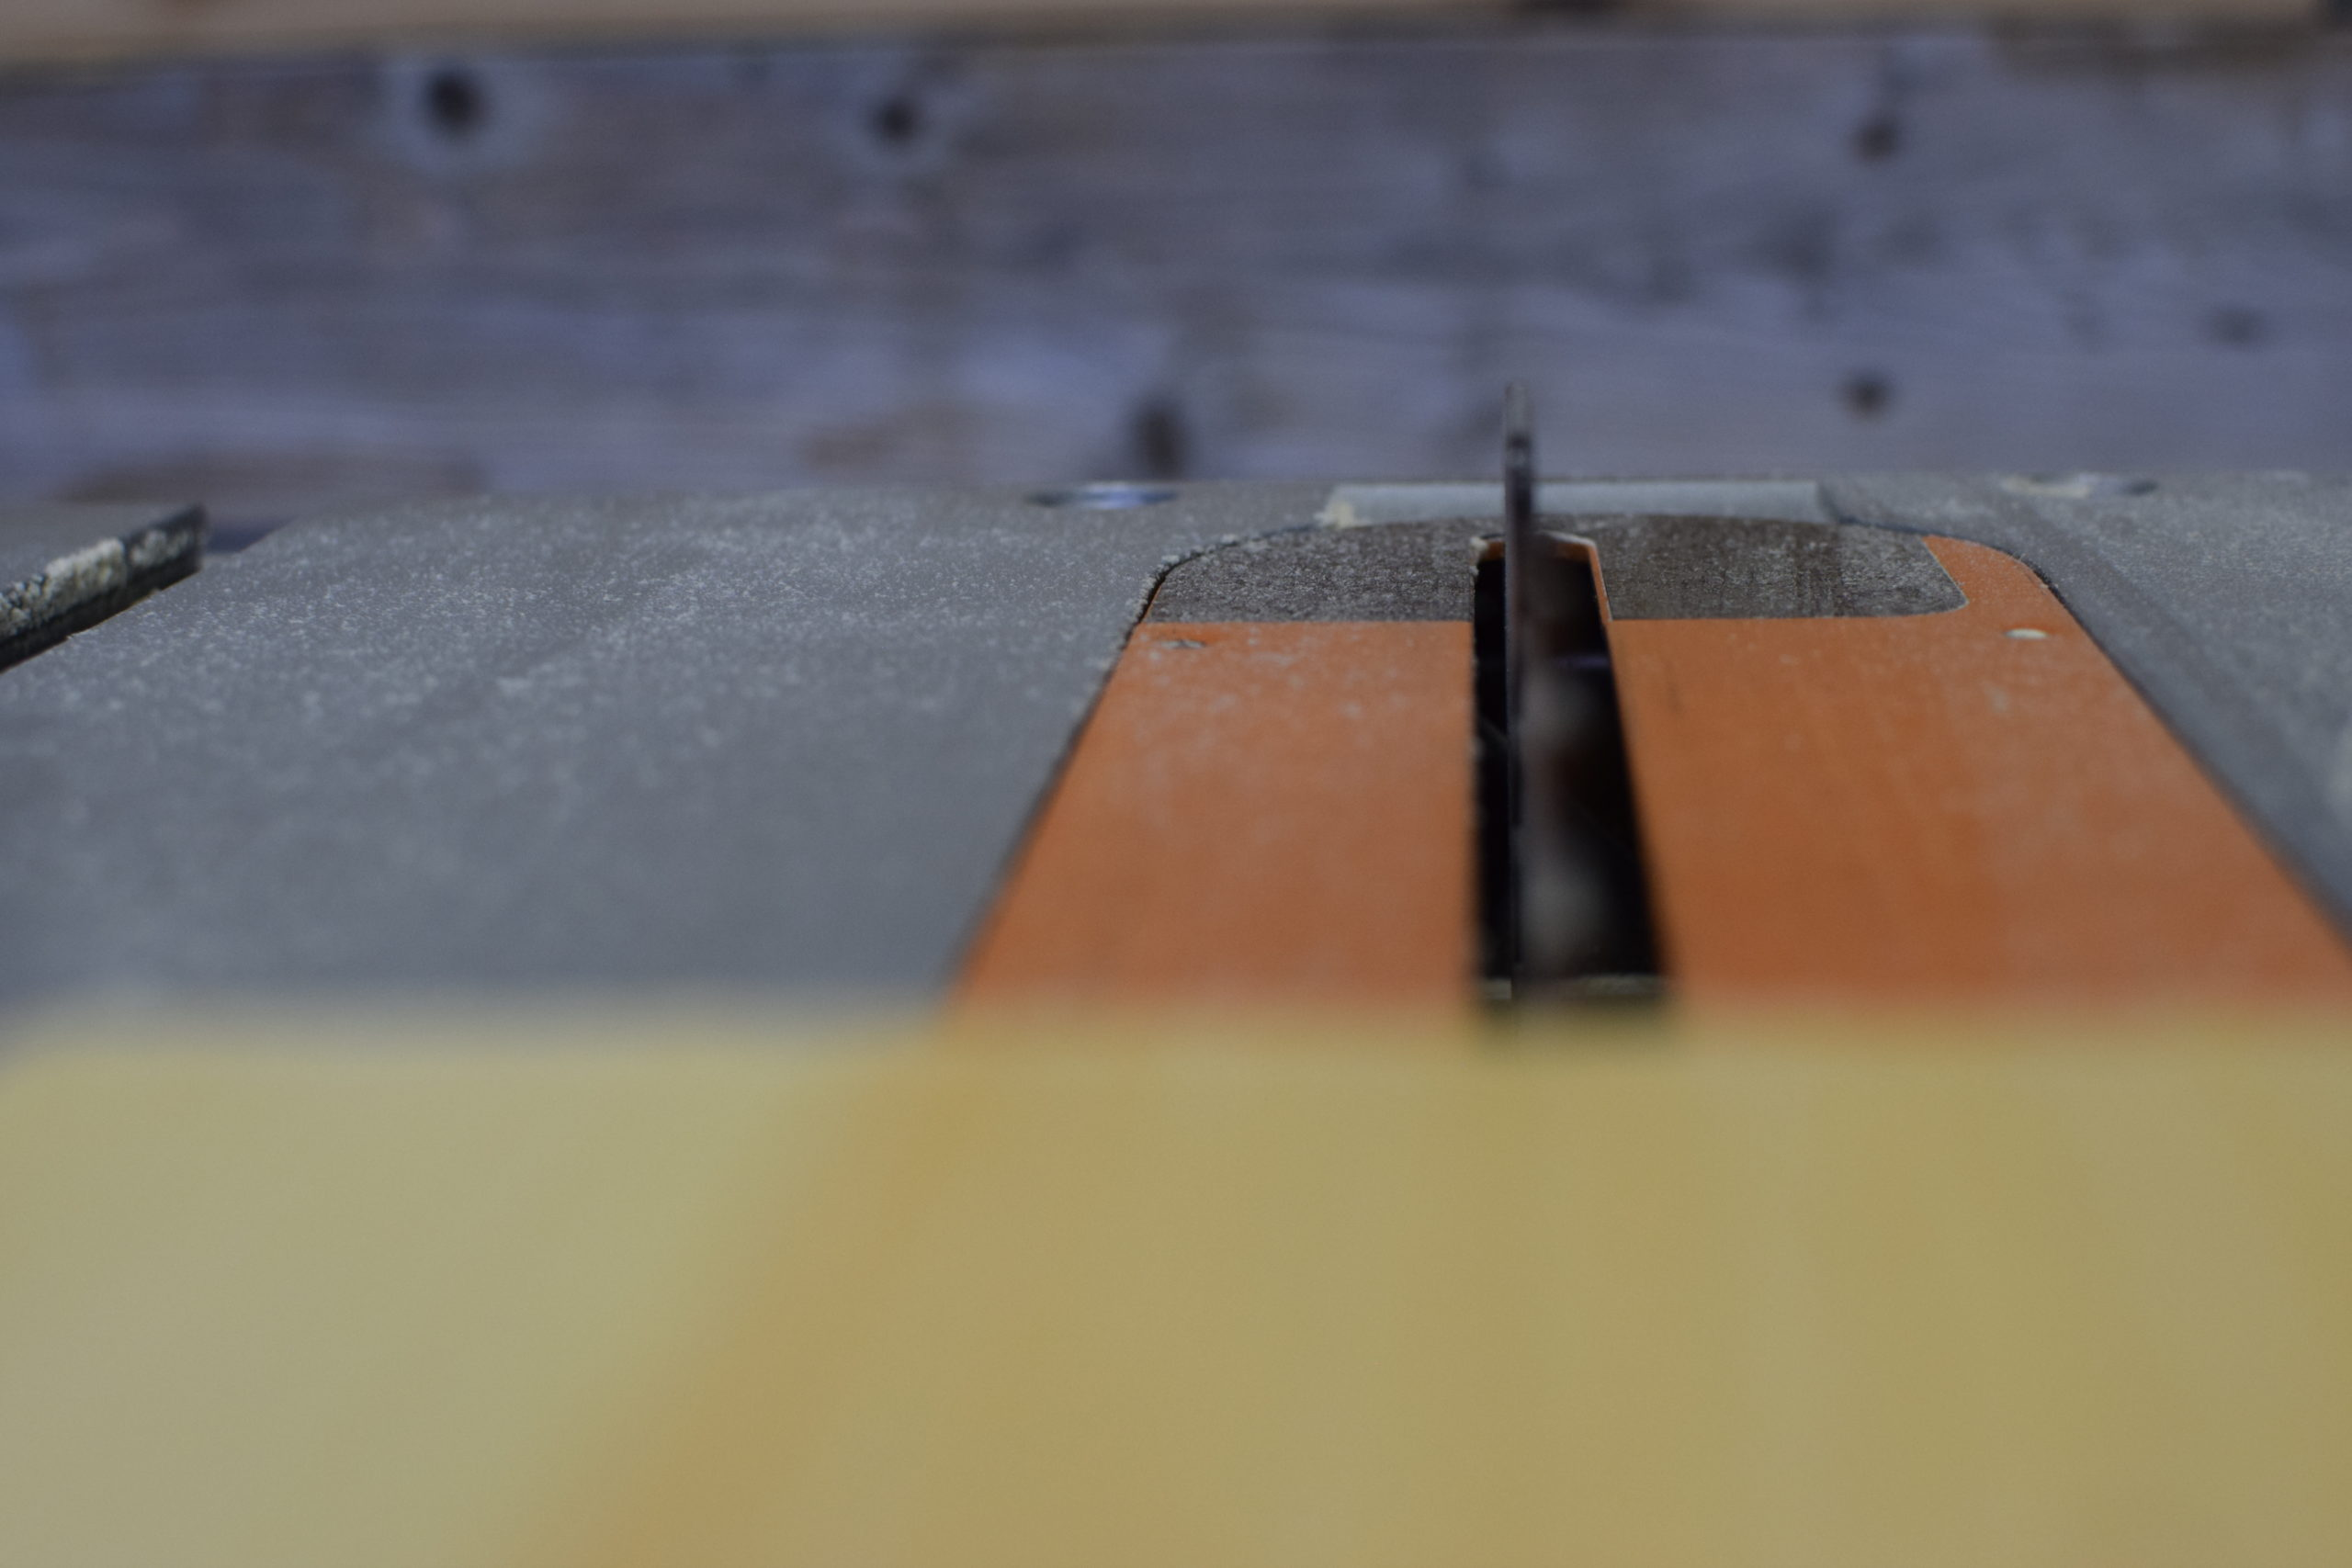 table saw blade in action ready to cut wood